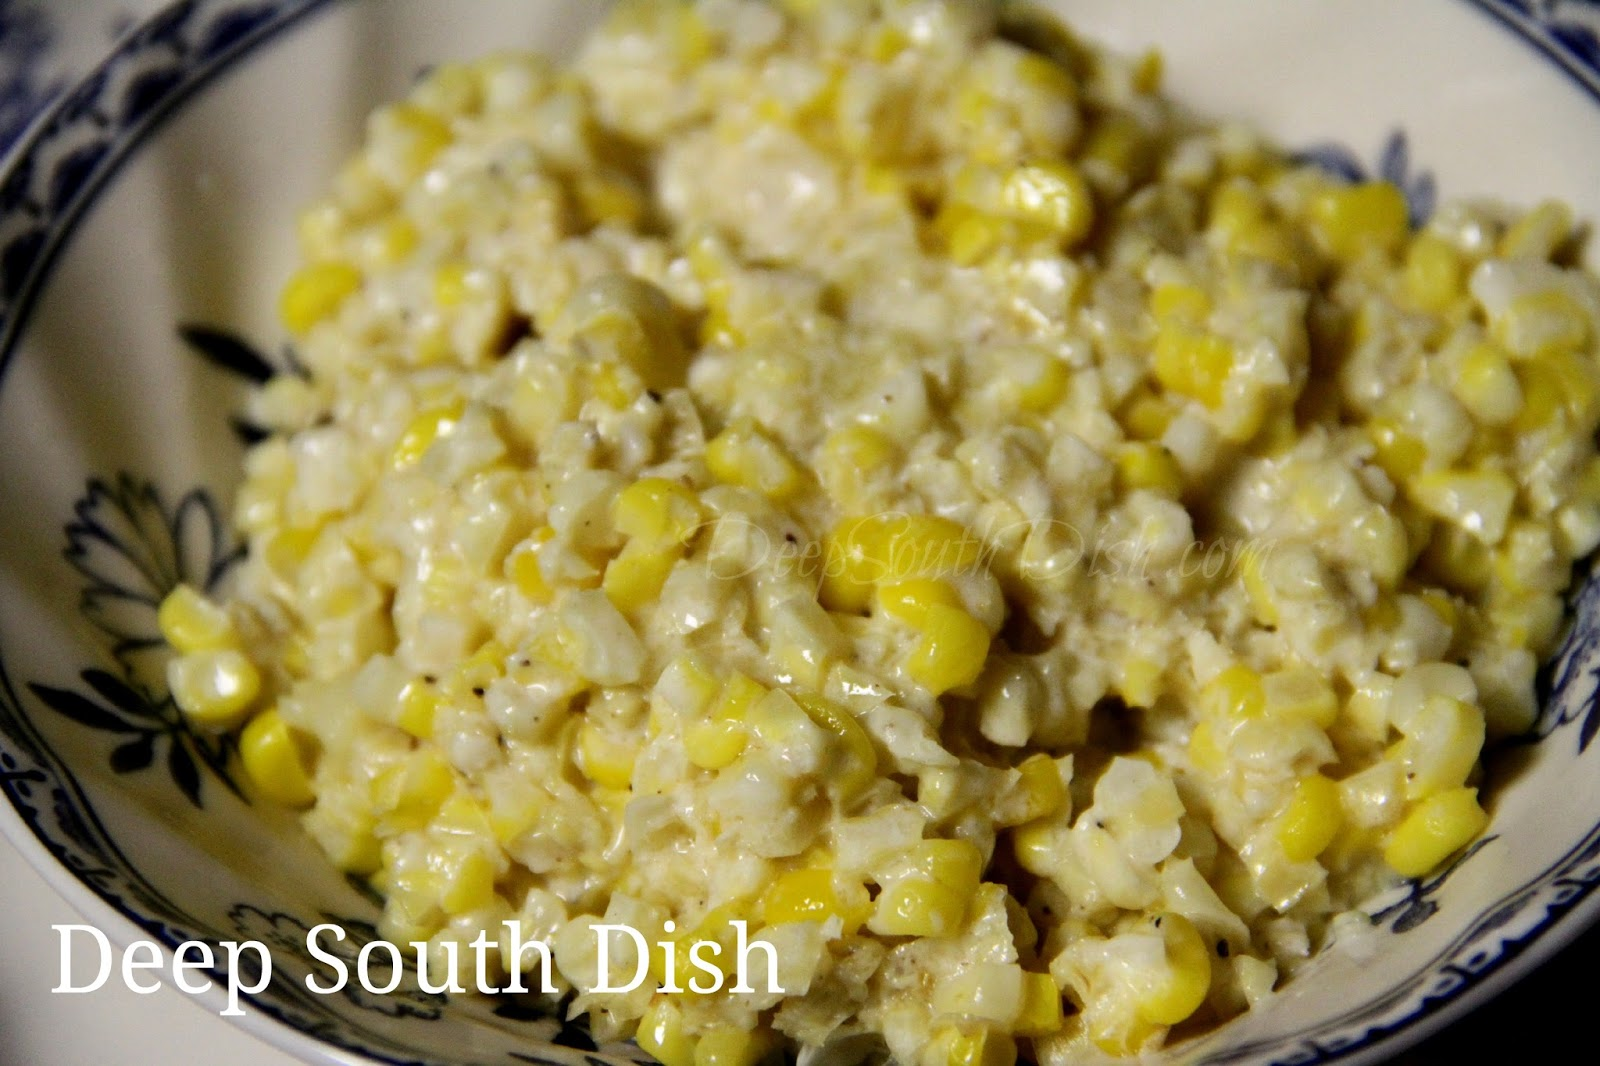 Deep South Dish: Southern Style Creamed Corn